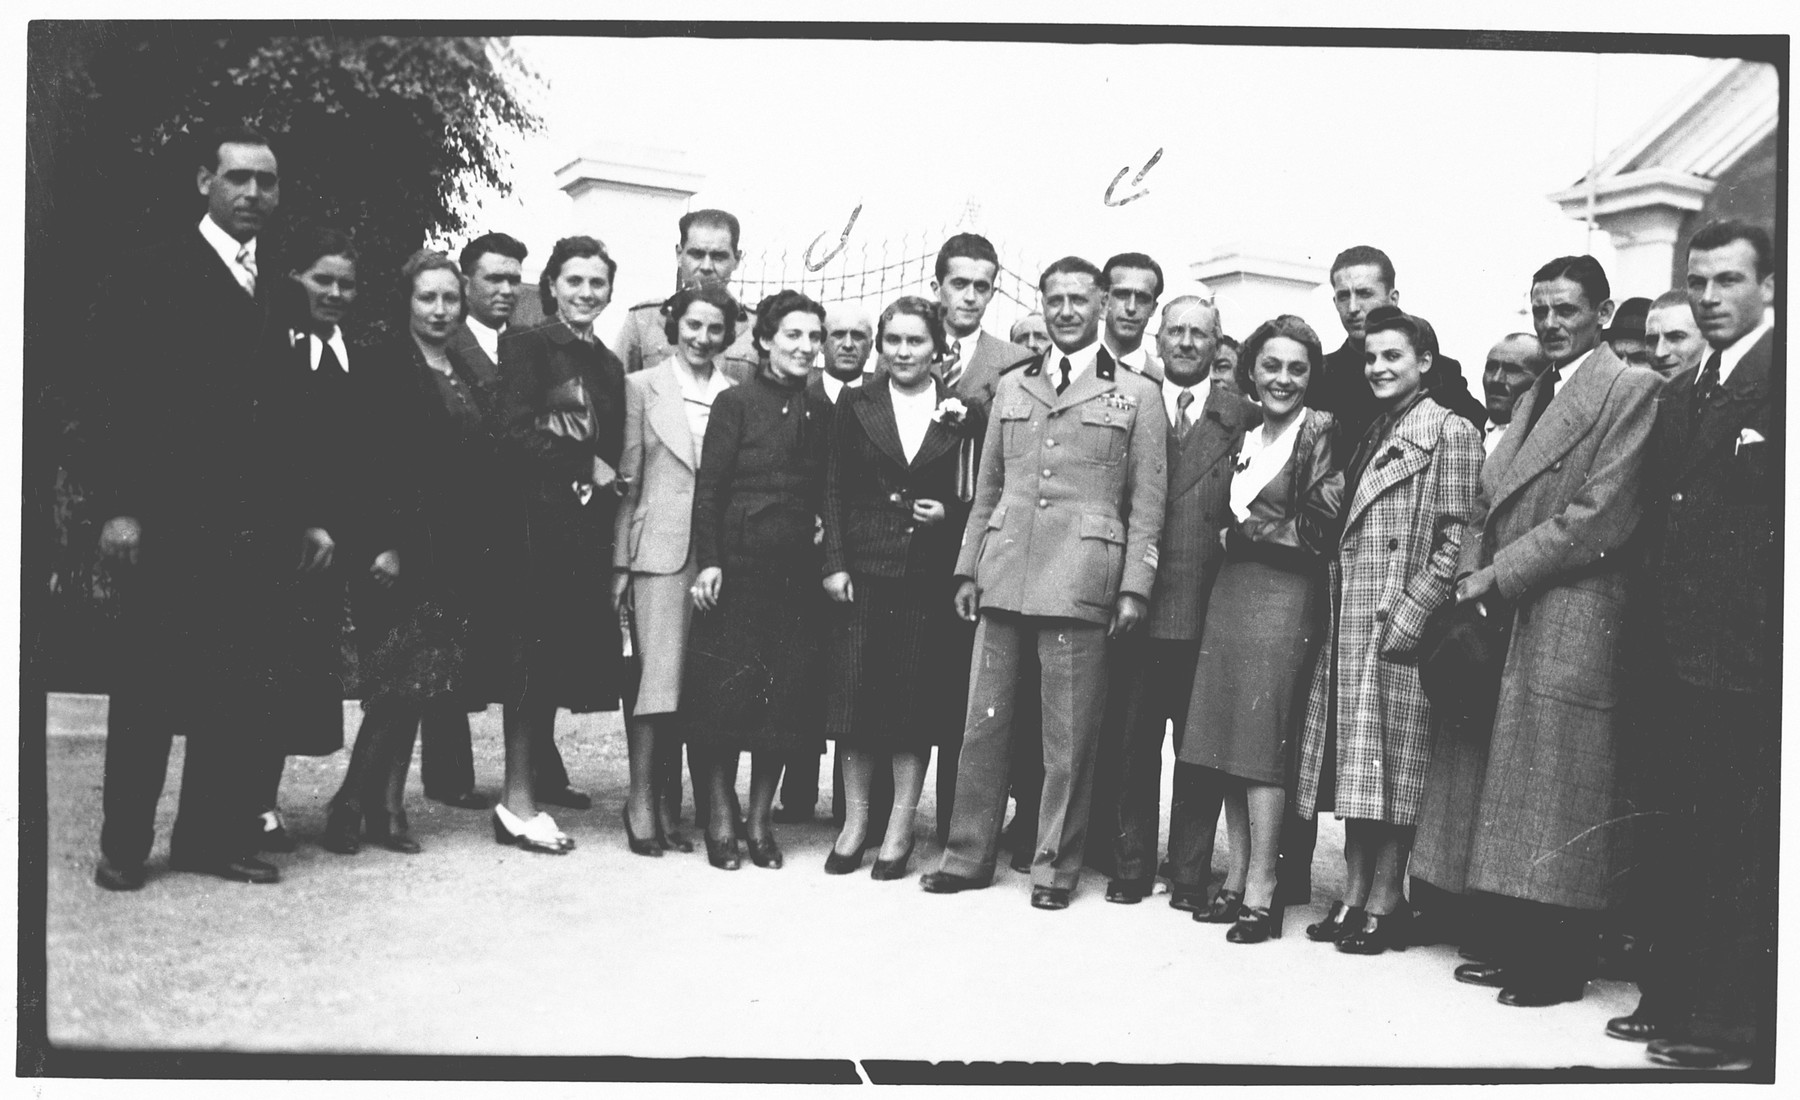 """Aldo Foa poses with his co-workers from the army laboratory while on an office trip.  The workers presented this photograph to Aldo Foa as a going-away momento after Foa was fired from his post as a result of the discriminatory laws of 1938.  The inscription on the back of the photograph reads, """"In memory of the beautiful trip; the workers of the separated Noceto's department give this album to their director Colonel Cavalier Aldo Foa who promoted it and made it possible."""""""